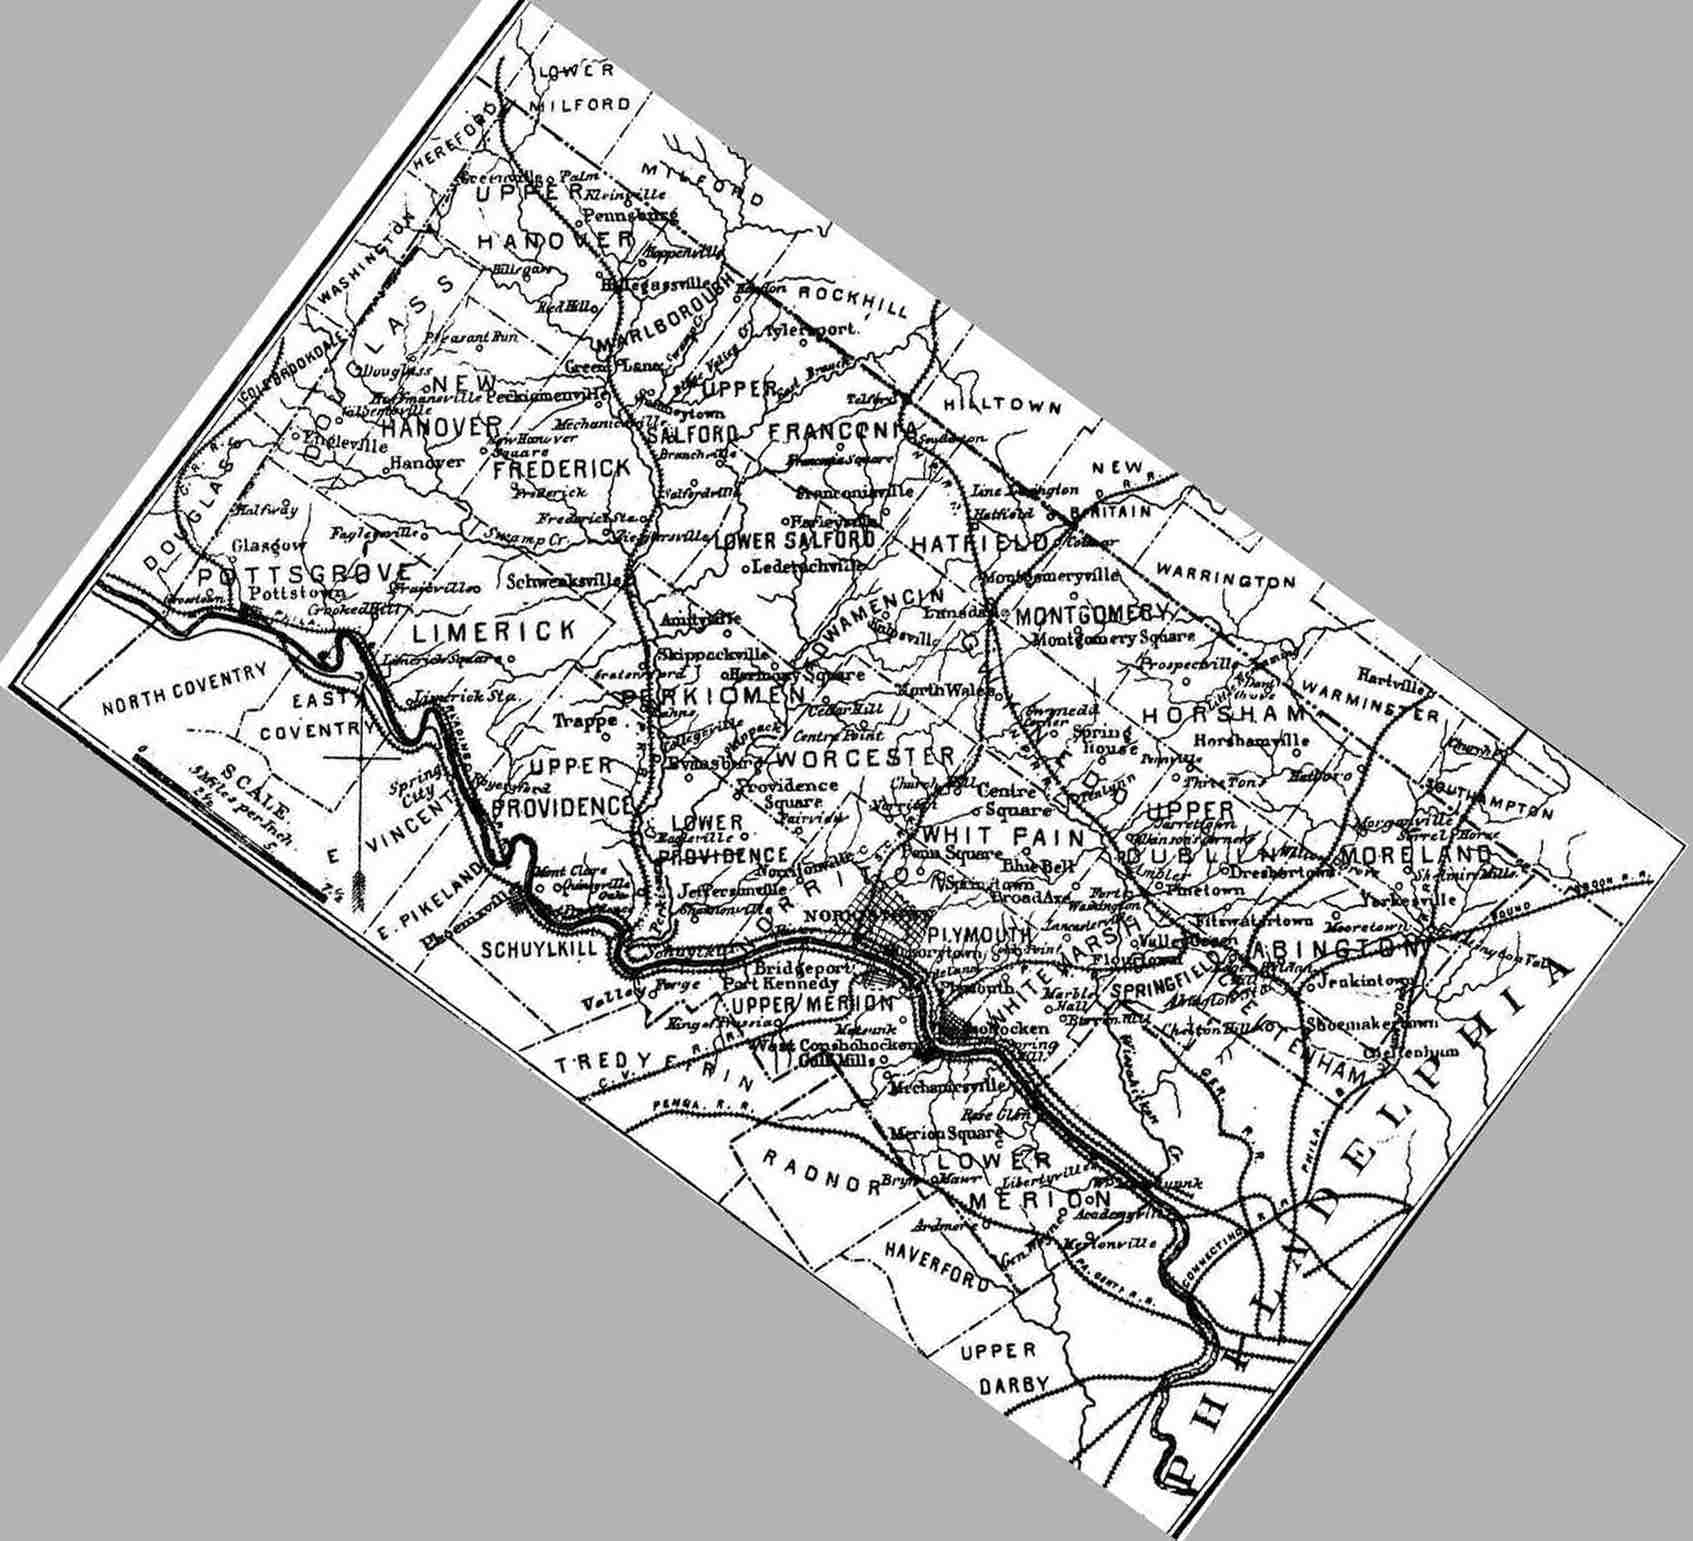 History of Montgomery County, Pennsylvania, Illustrated 1884 on map of northern liberties pa, map of camden county nj, delaware county, map of pennsylvania, king of prussia, schuylkill county, washington county, map of new castle county de, map of hershey pa, bucks county, allegheny county, map of hatboro pa, map of delaware county pa, map of philadelphia, map of norristown pa, lackawanna county, map of city of harrisburg pa, map of lehigh county pa, map of berks county pa, map of scranton wilkes barre pa, chester county, map of glenside pa, map of narberth pa, map of lyons pa, franklin county, north wales, lancaster county, lehigh valley, monroe county, delaware valley, map of fallsington pa, philadelphia county, map of melrose park pa, berks county, map of northampton county pa, lehigh county, map of schuylkill river pa,